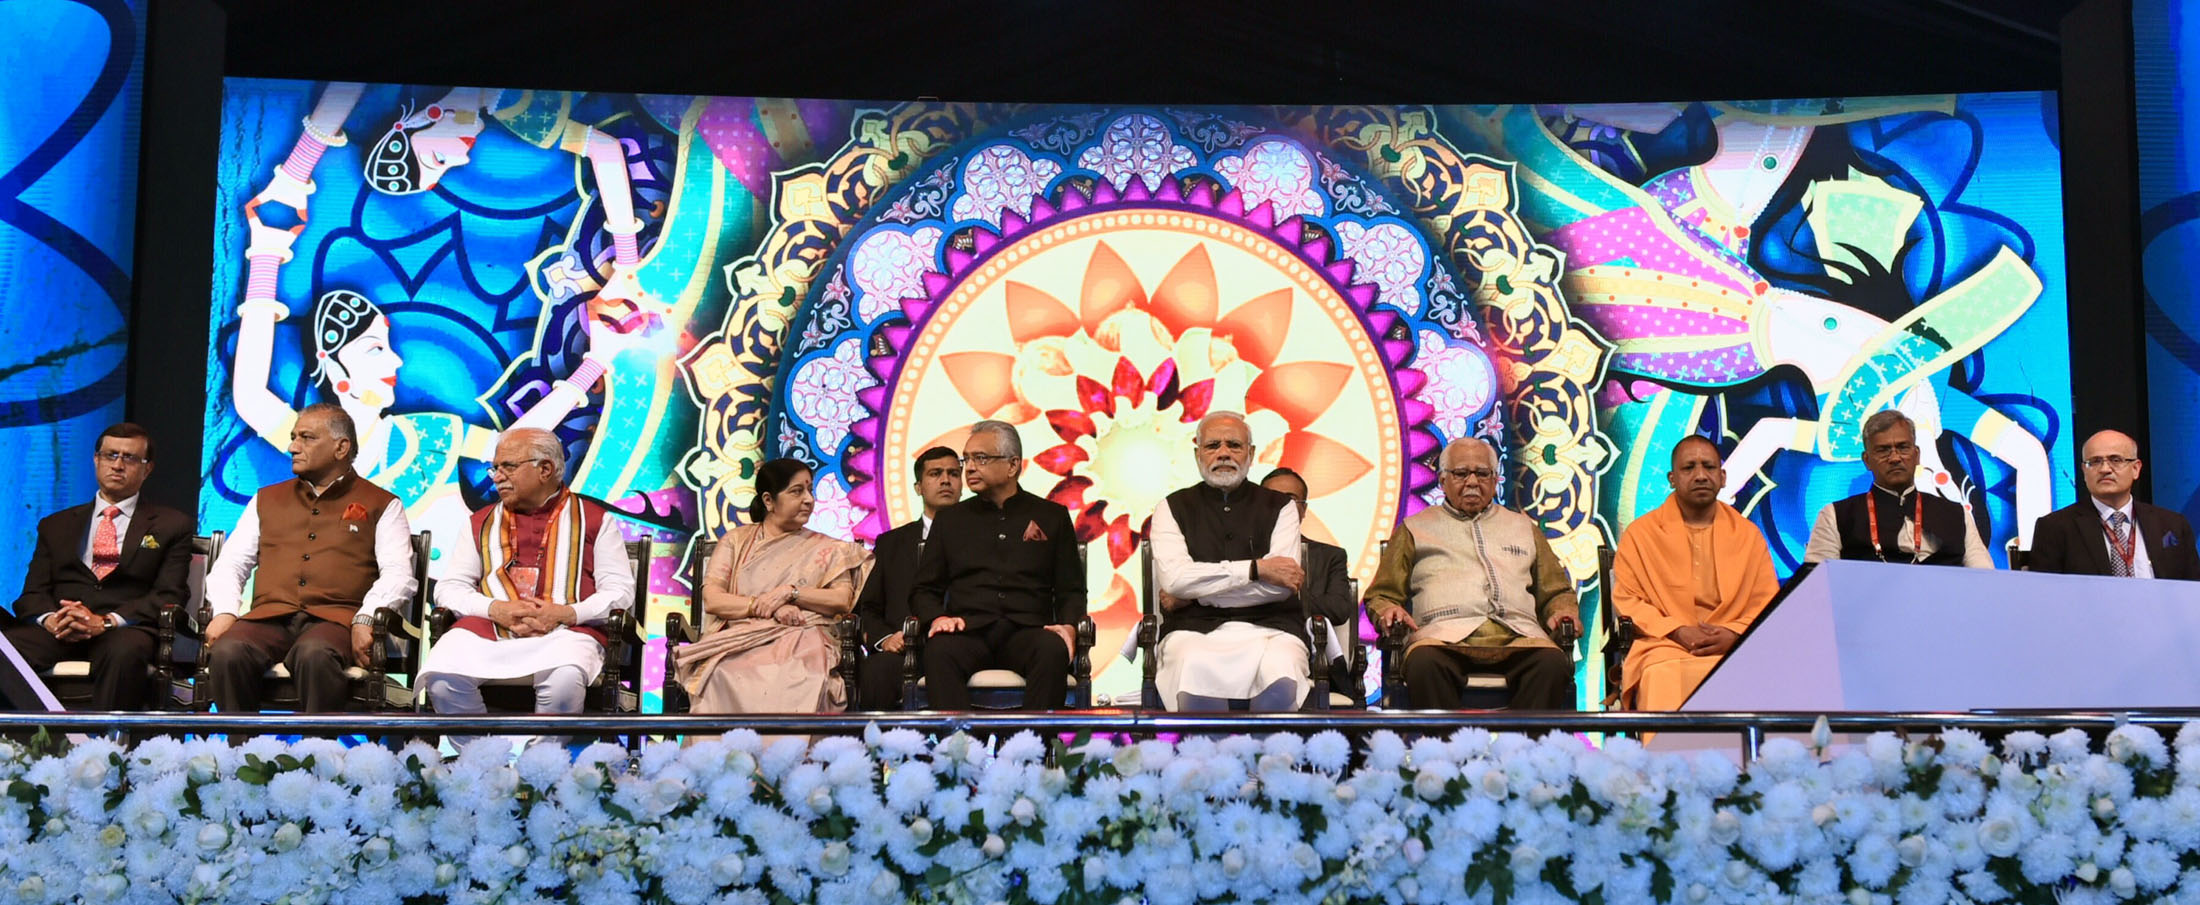 Prime Minister Narendra Modi and Prime Minister of Mauritius Pravind Jugnauth at the inauguration of the 15th Pravasi Bharatiya Divas convention 2019, in Varanasi. Governor of Uttar Pradesh Ram Naik, Minister for External Affairs Sushma Swaraj, Chief Minister of Uttar Pradesh Yogi Adityanath, Chief Minister of Haryana Manohar Lal Khattar, Chief Minister of Uttarakhand Trivendra Singh Rawat, Minister of State for External Affairs V.K. Singh and other dignitaries are also seen. Photo courtesy: PIB